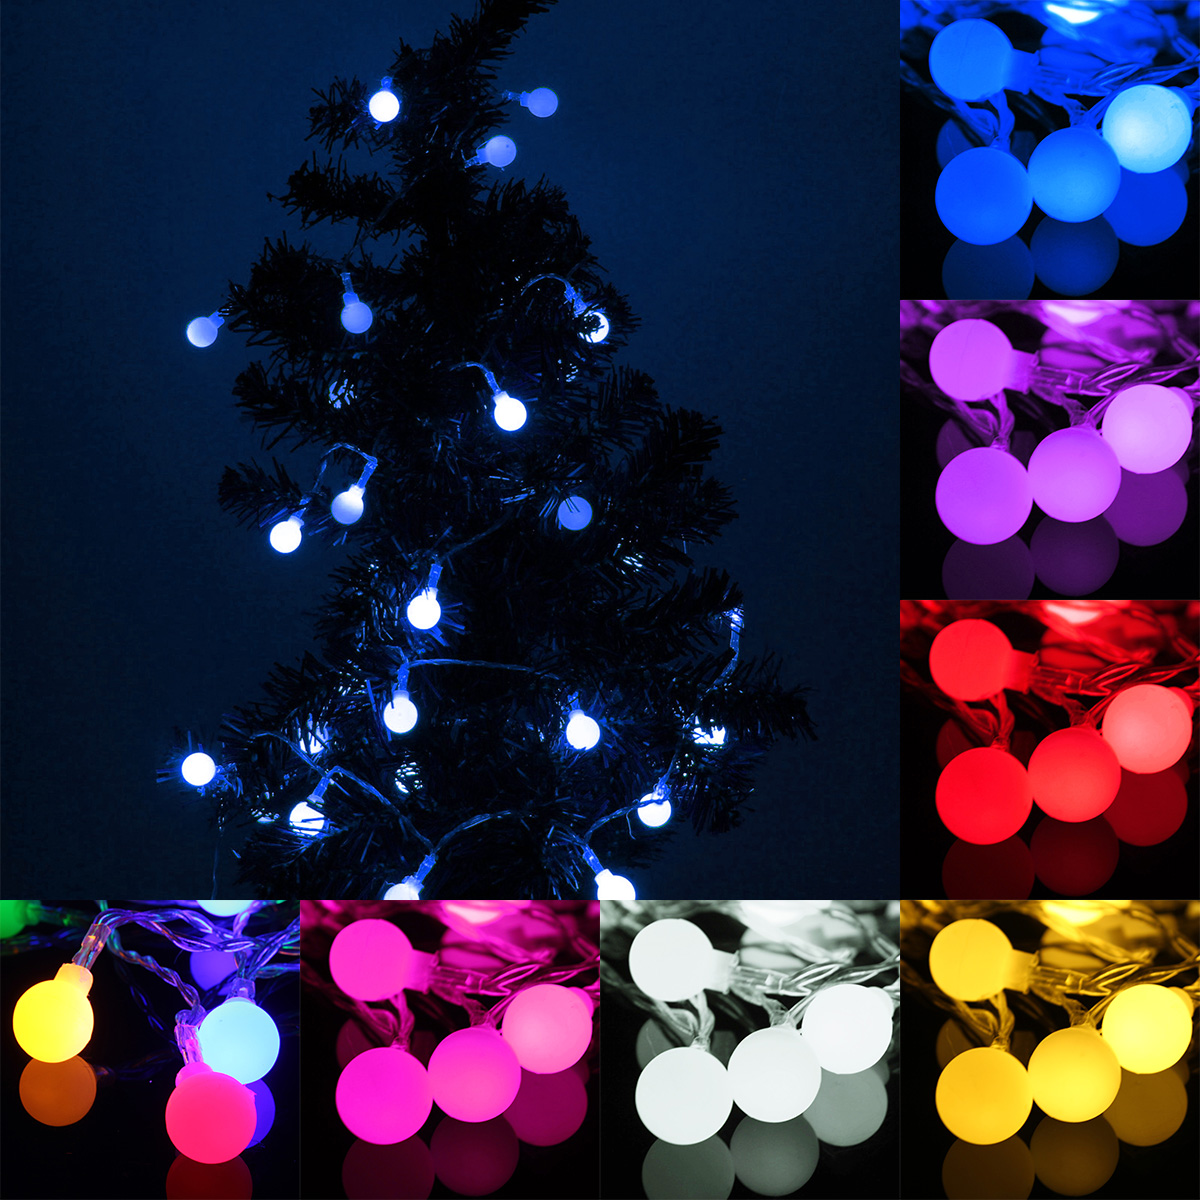 5M 50LED Battery Globe Patio Outdoor String Light Remote Christmas Wedding Party LED Lighting Strings